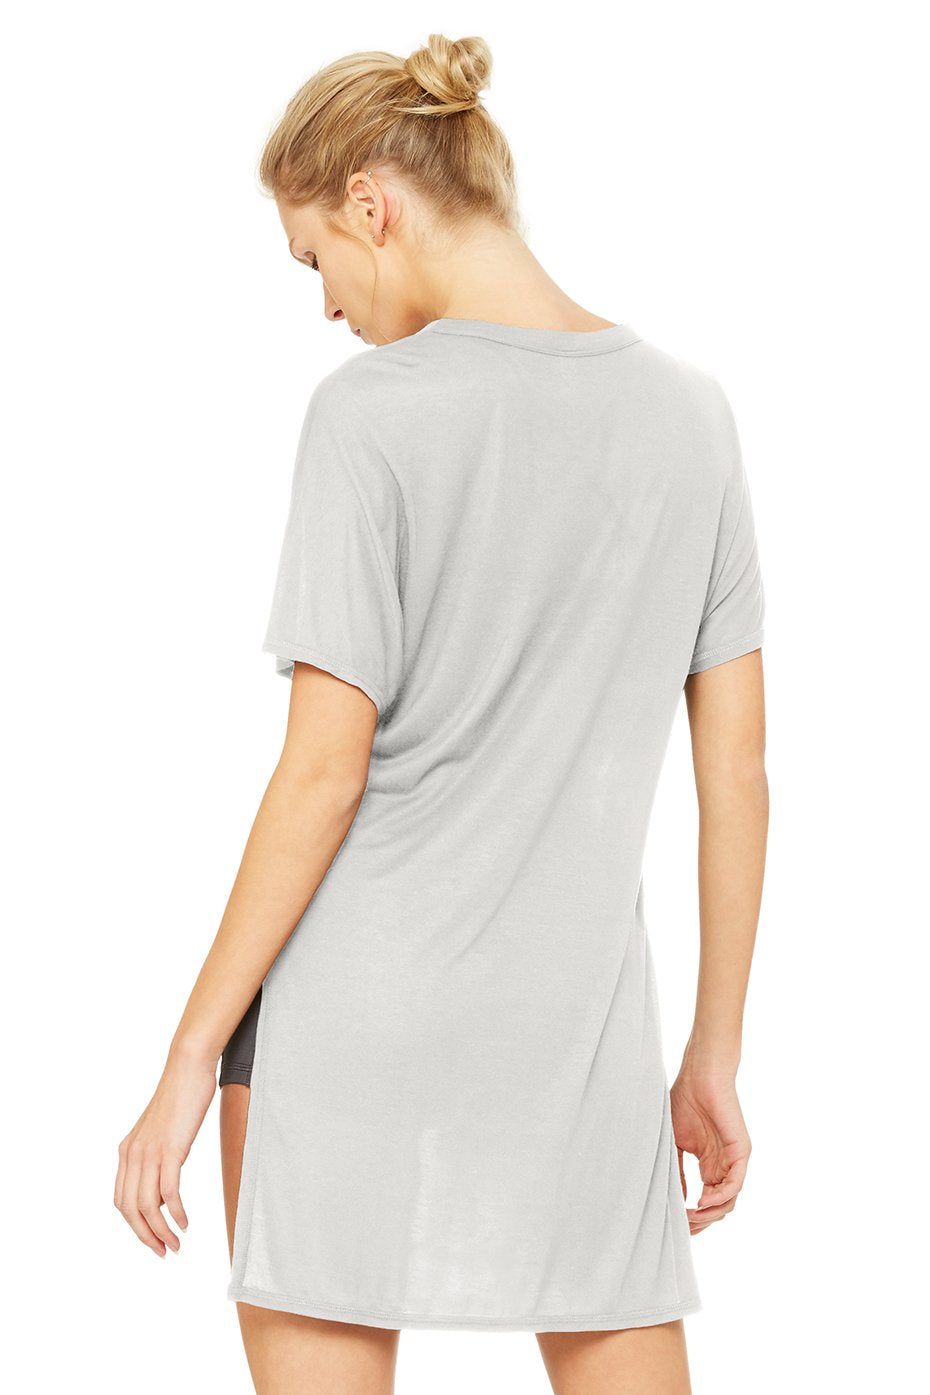 c890ba2f2290 Products - Short Sleeve